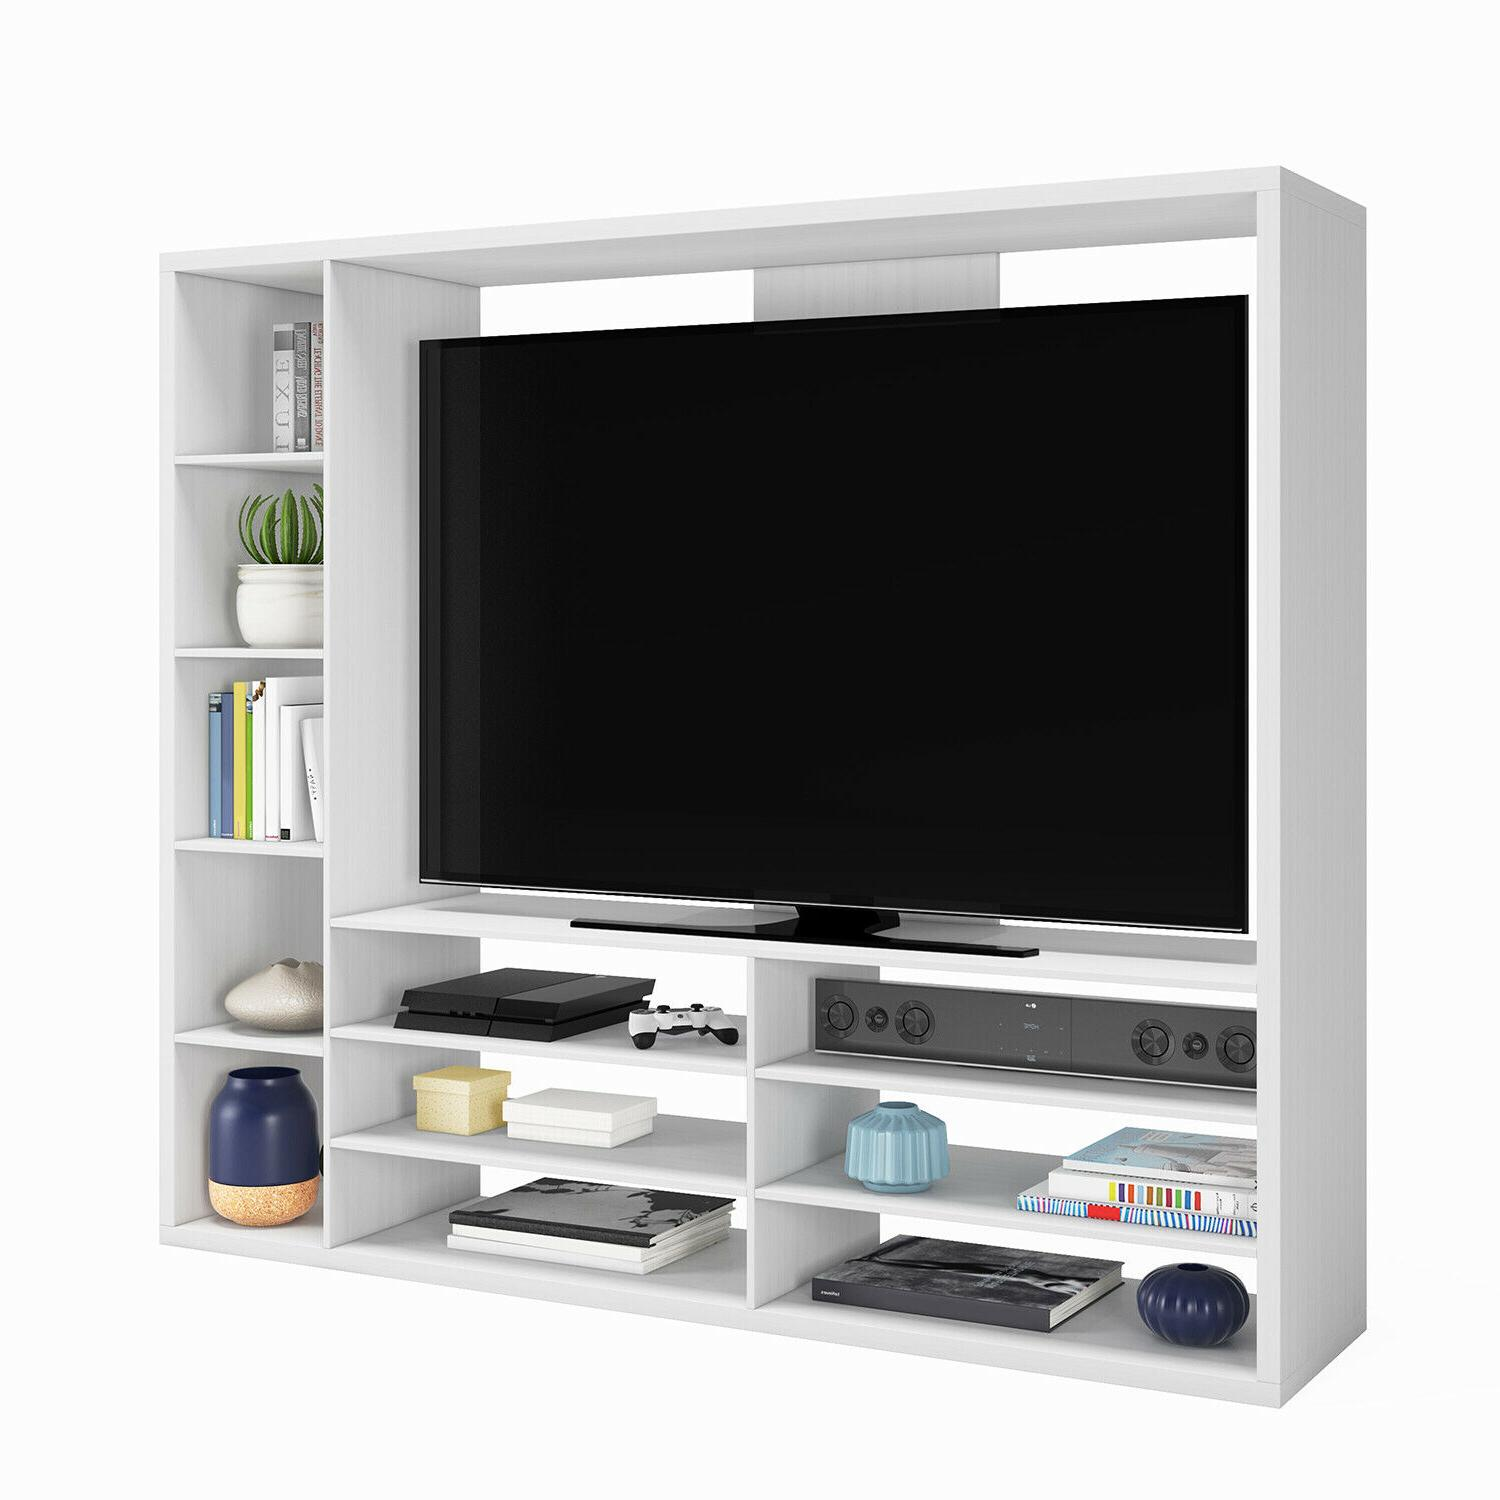 Large Entertainment for Stand Media Storage